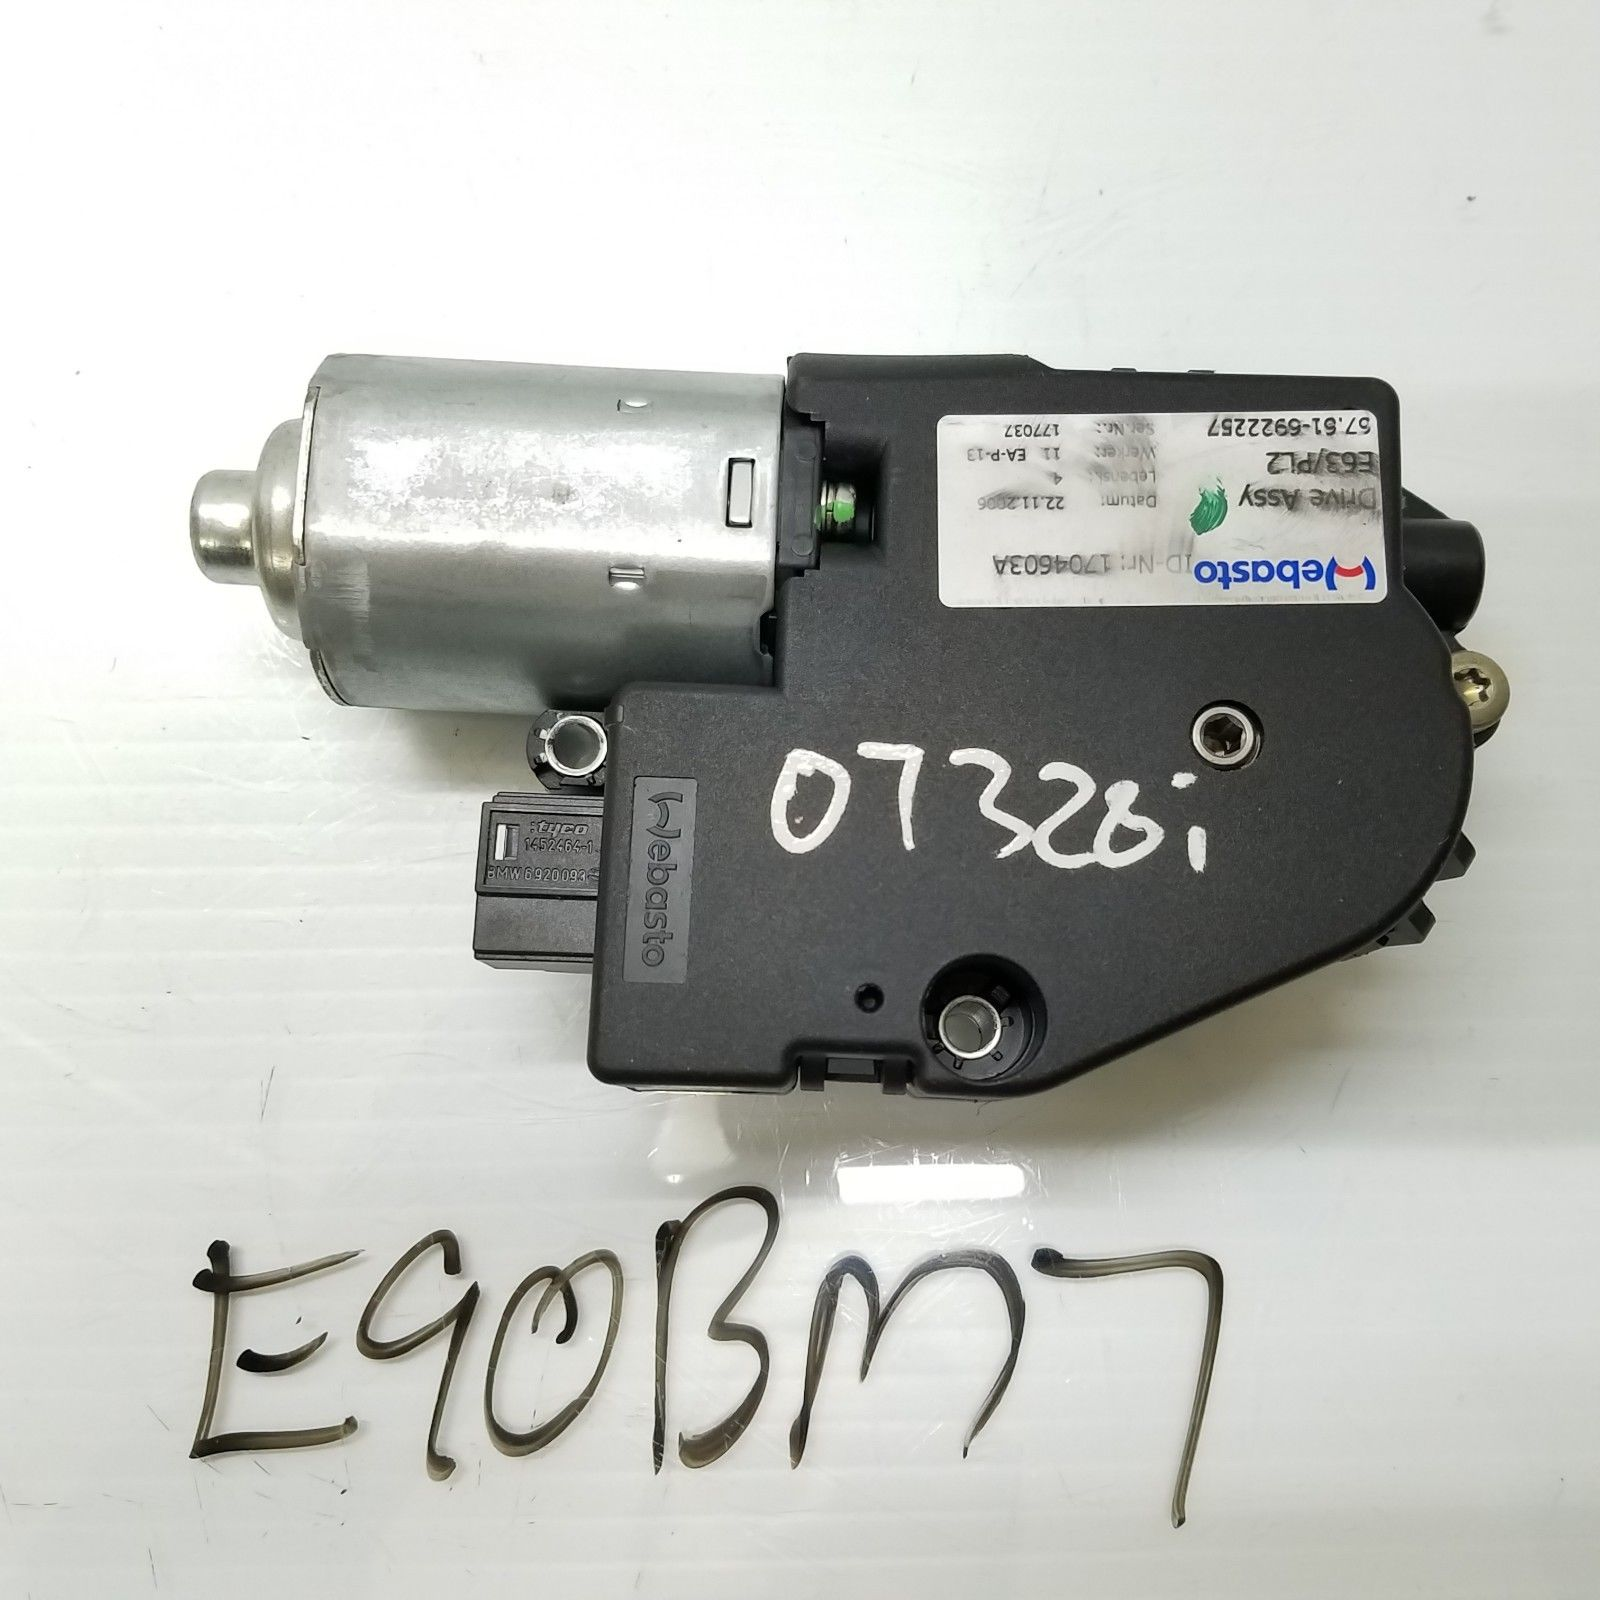 2007-2011 BMW 325i 330i 328i E90 SUNROOF MOTOR DRIVE UNIT ACTUATOR OEM 6922257 Does not apply E90BM7